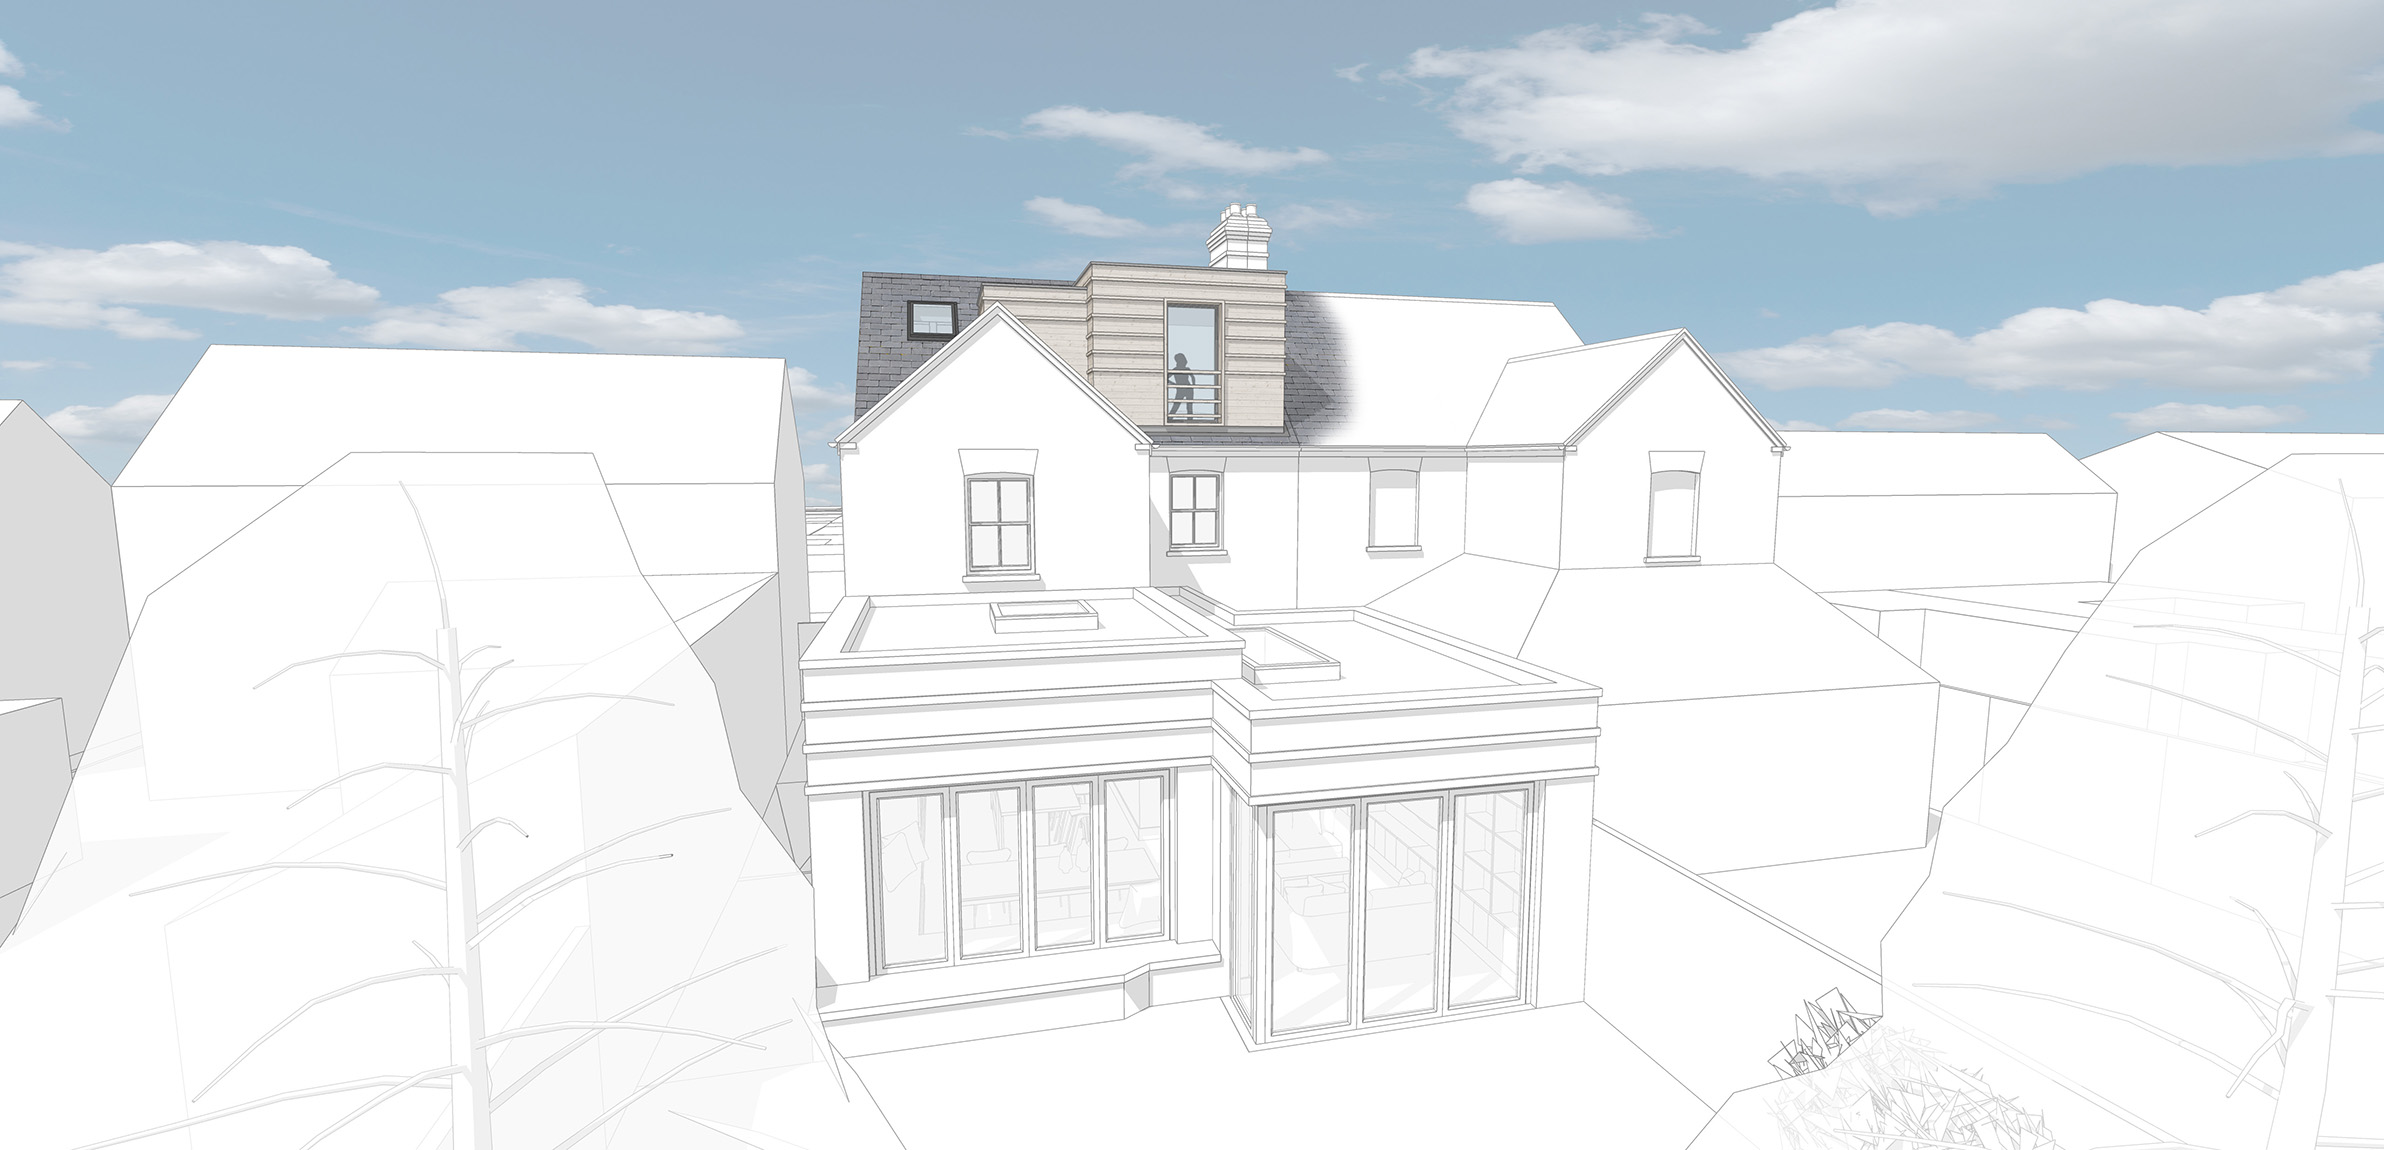 Revised dormer - south view